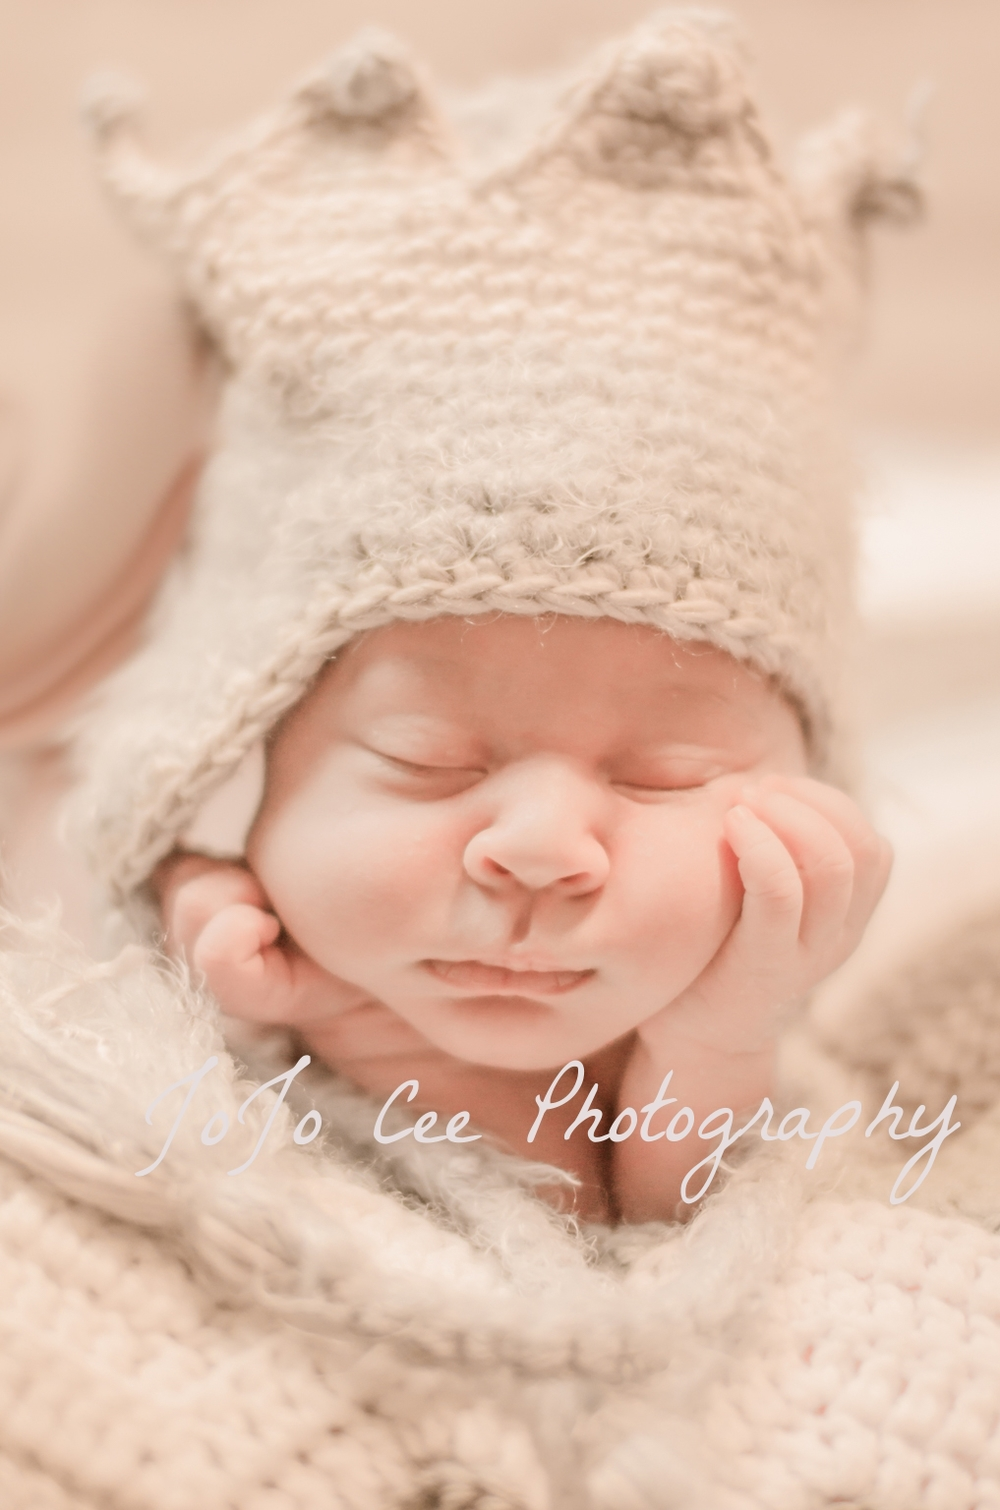 Masons_Newborn_Shoot_2015-4.jpg